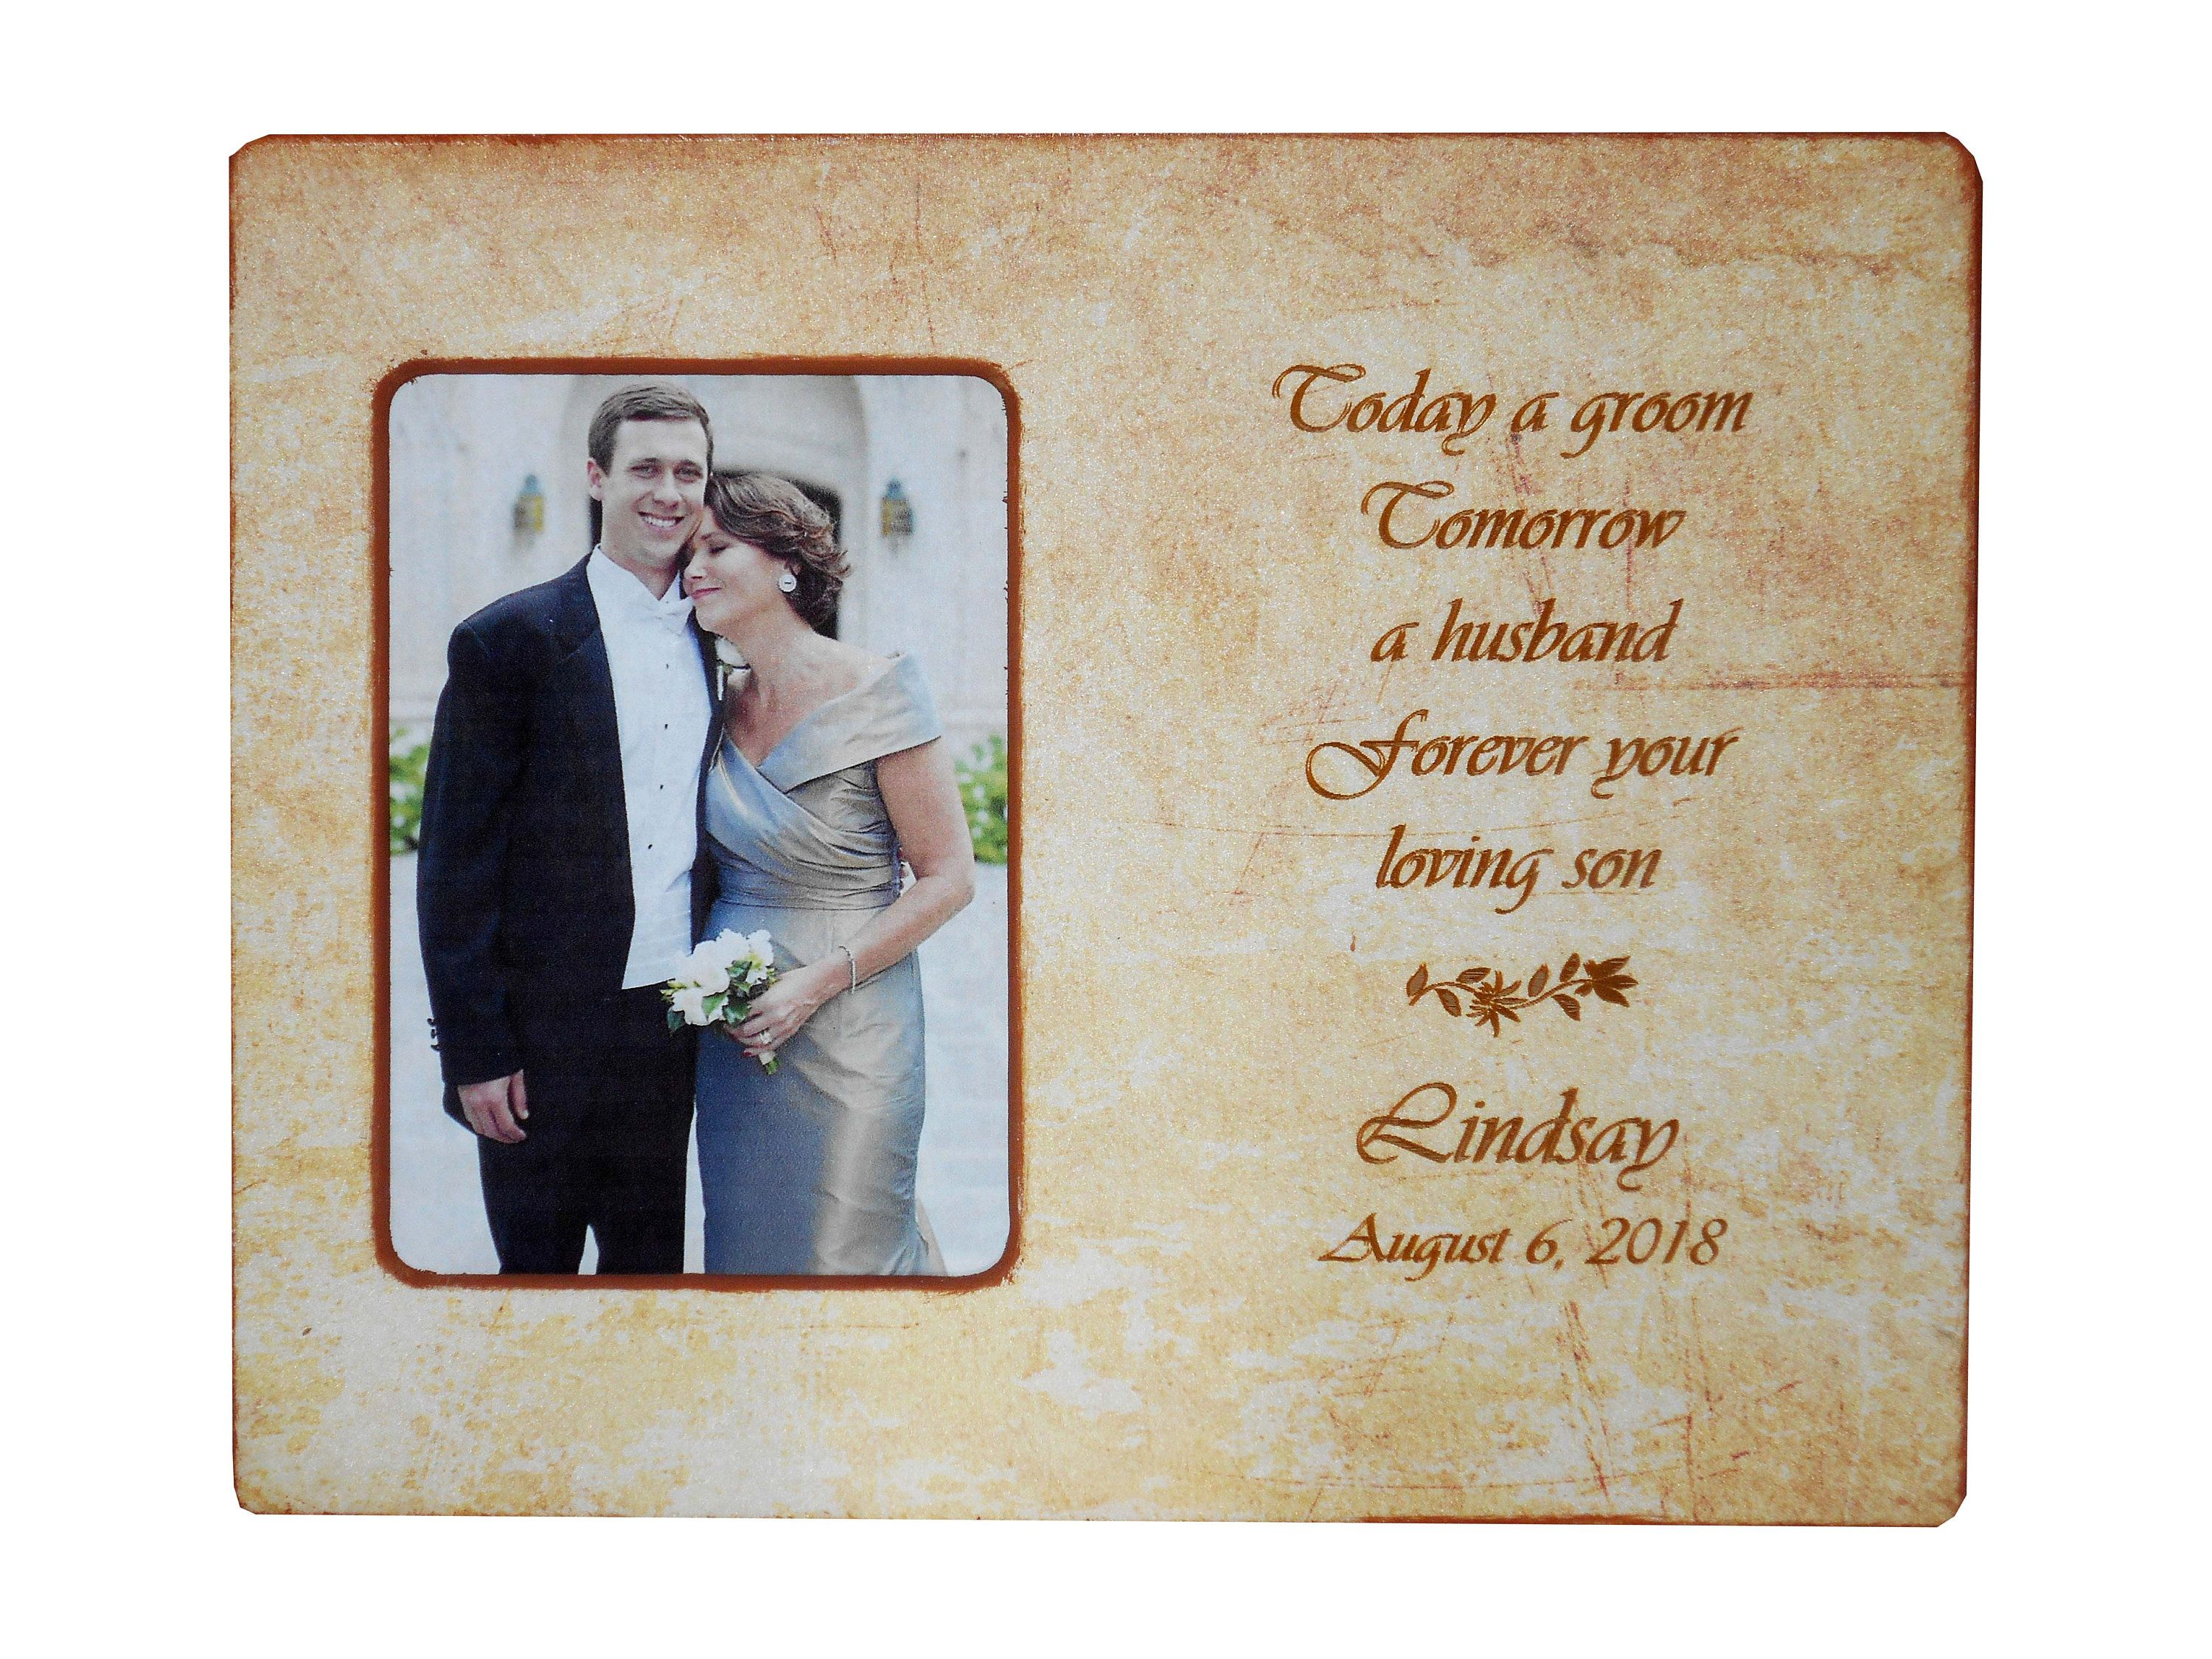 Dad wedding giftpersonalized picture framegroom gift to